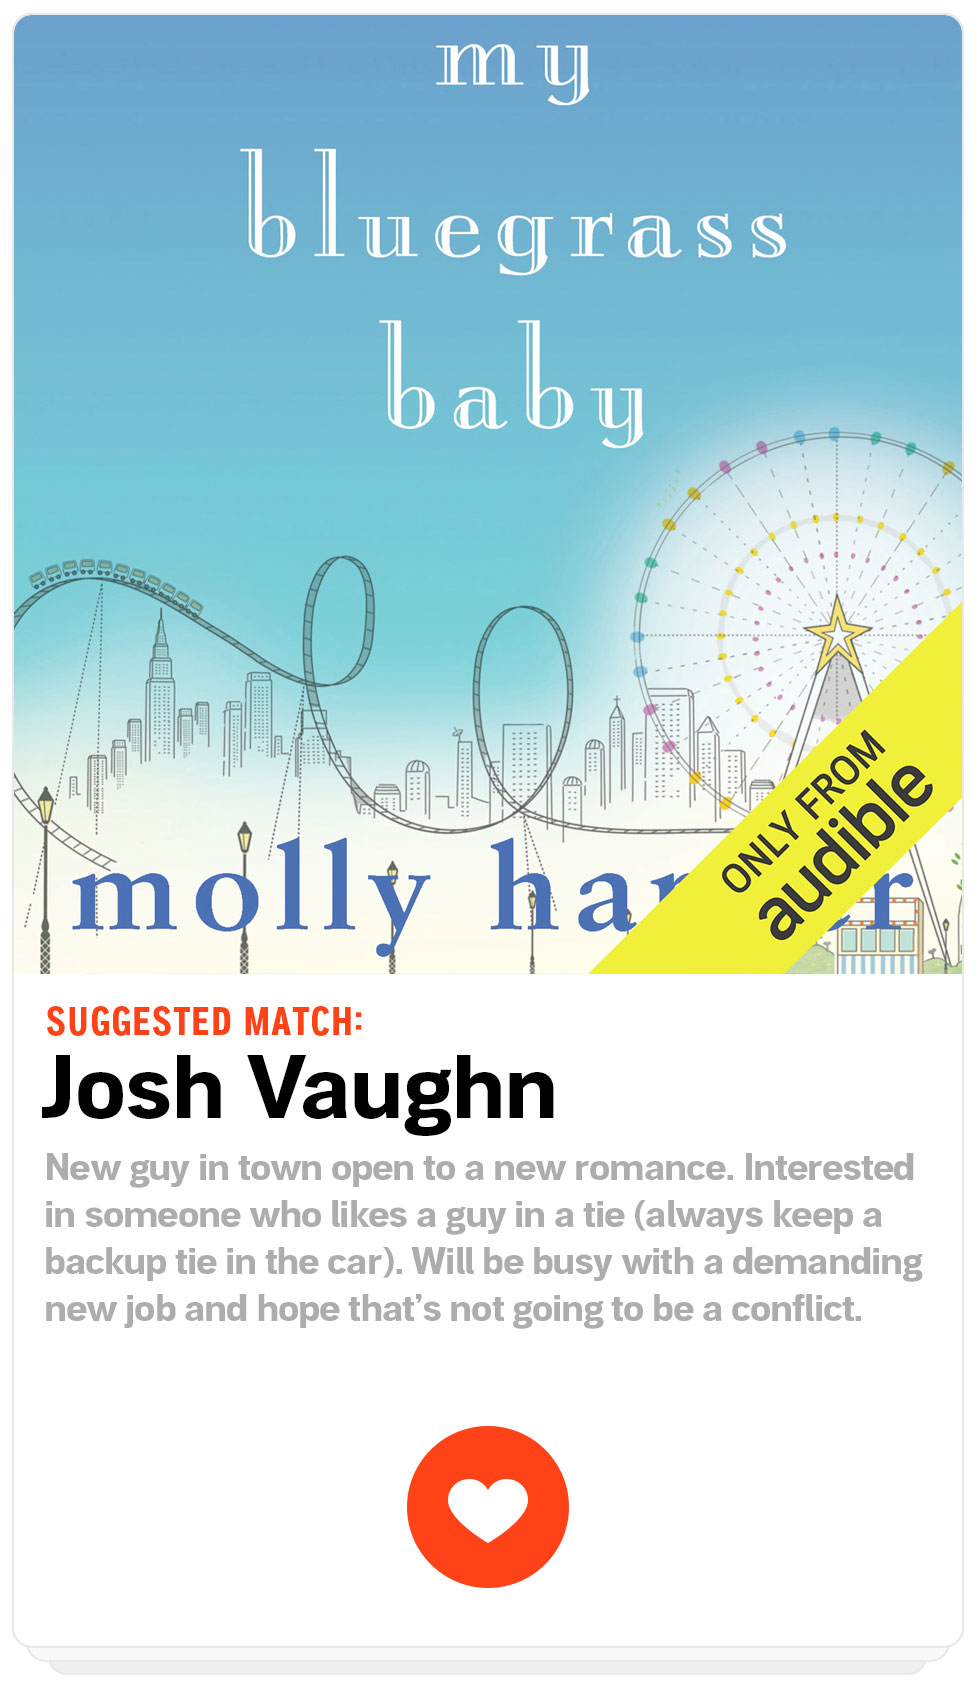 Suggested Match: Josh Vaughn